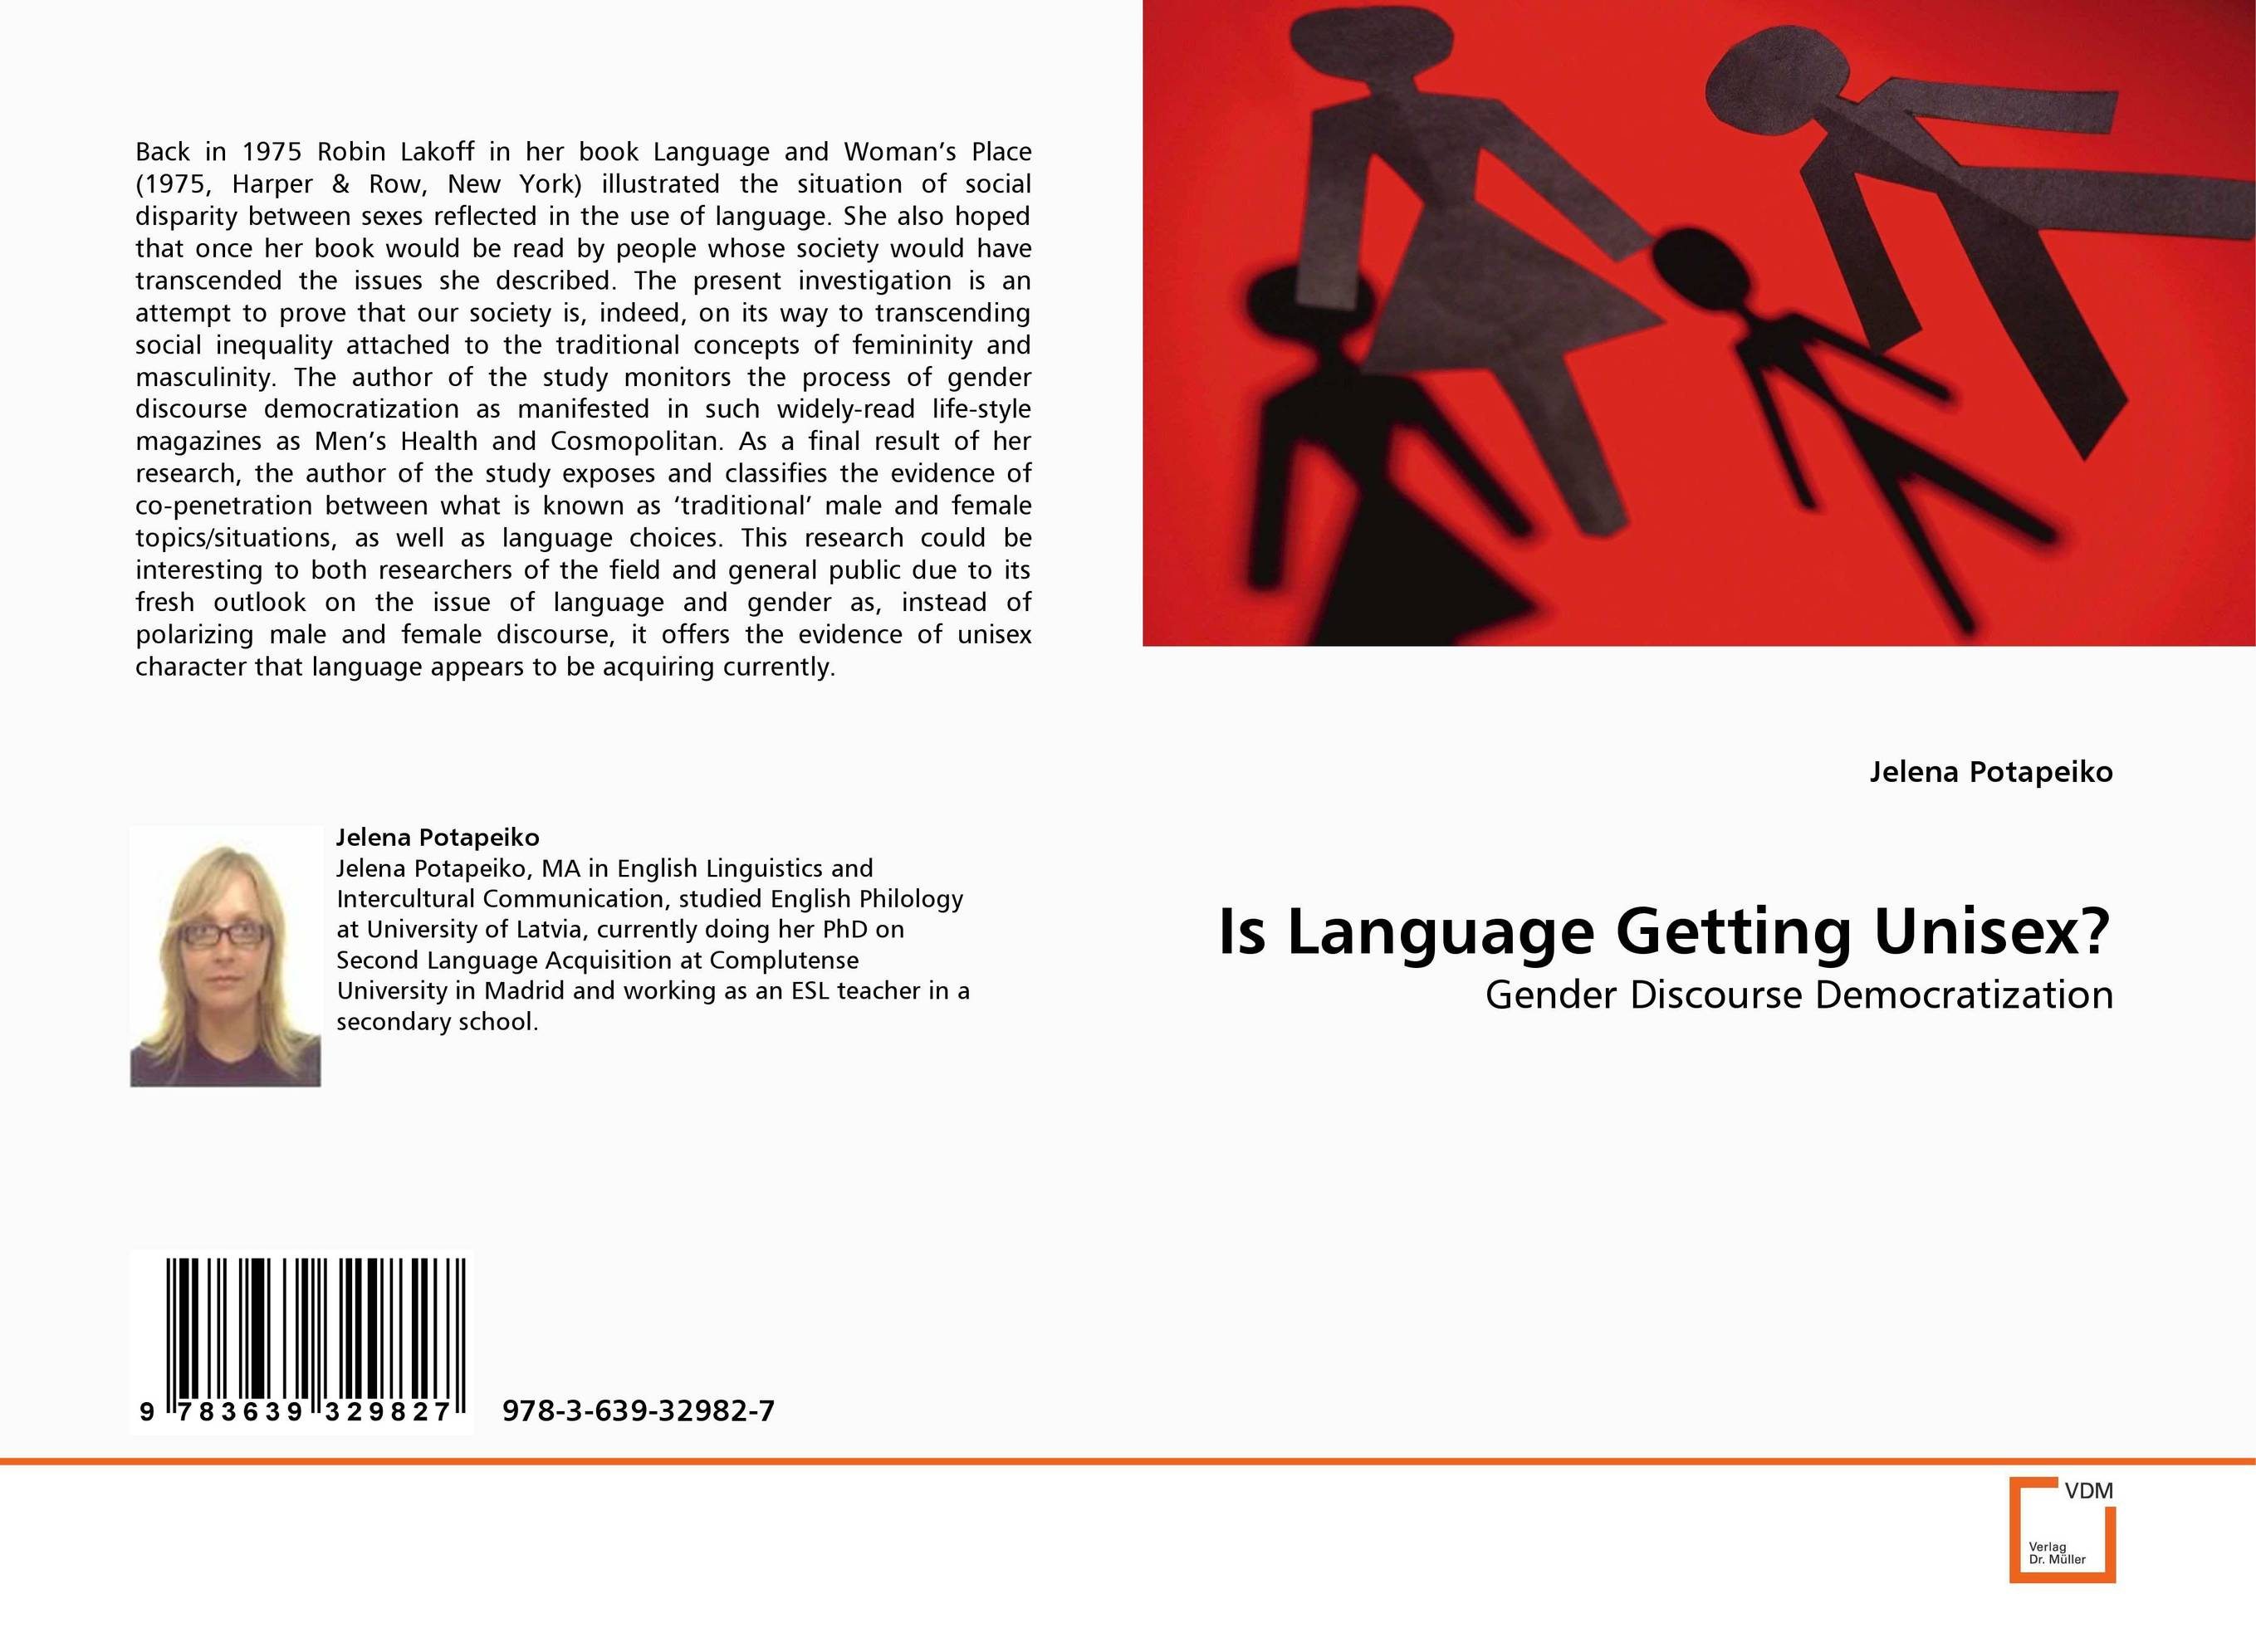 Is Language Getting Unisex? nashwa ghoneim case study on social entrepreneurship in egypt